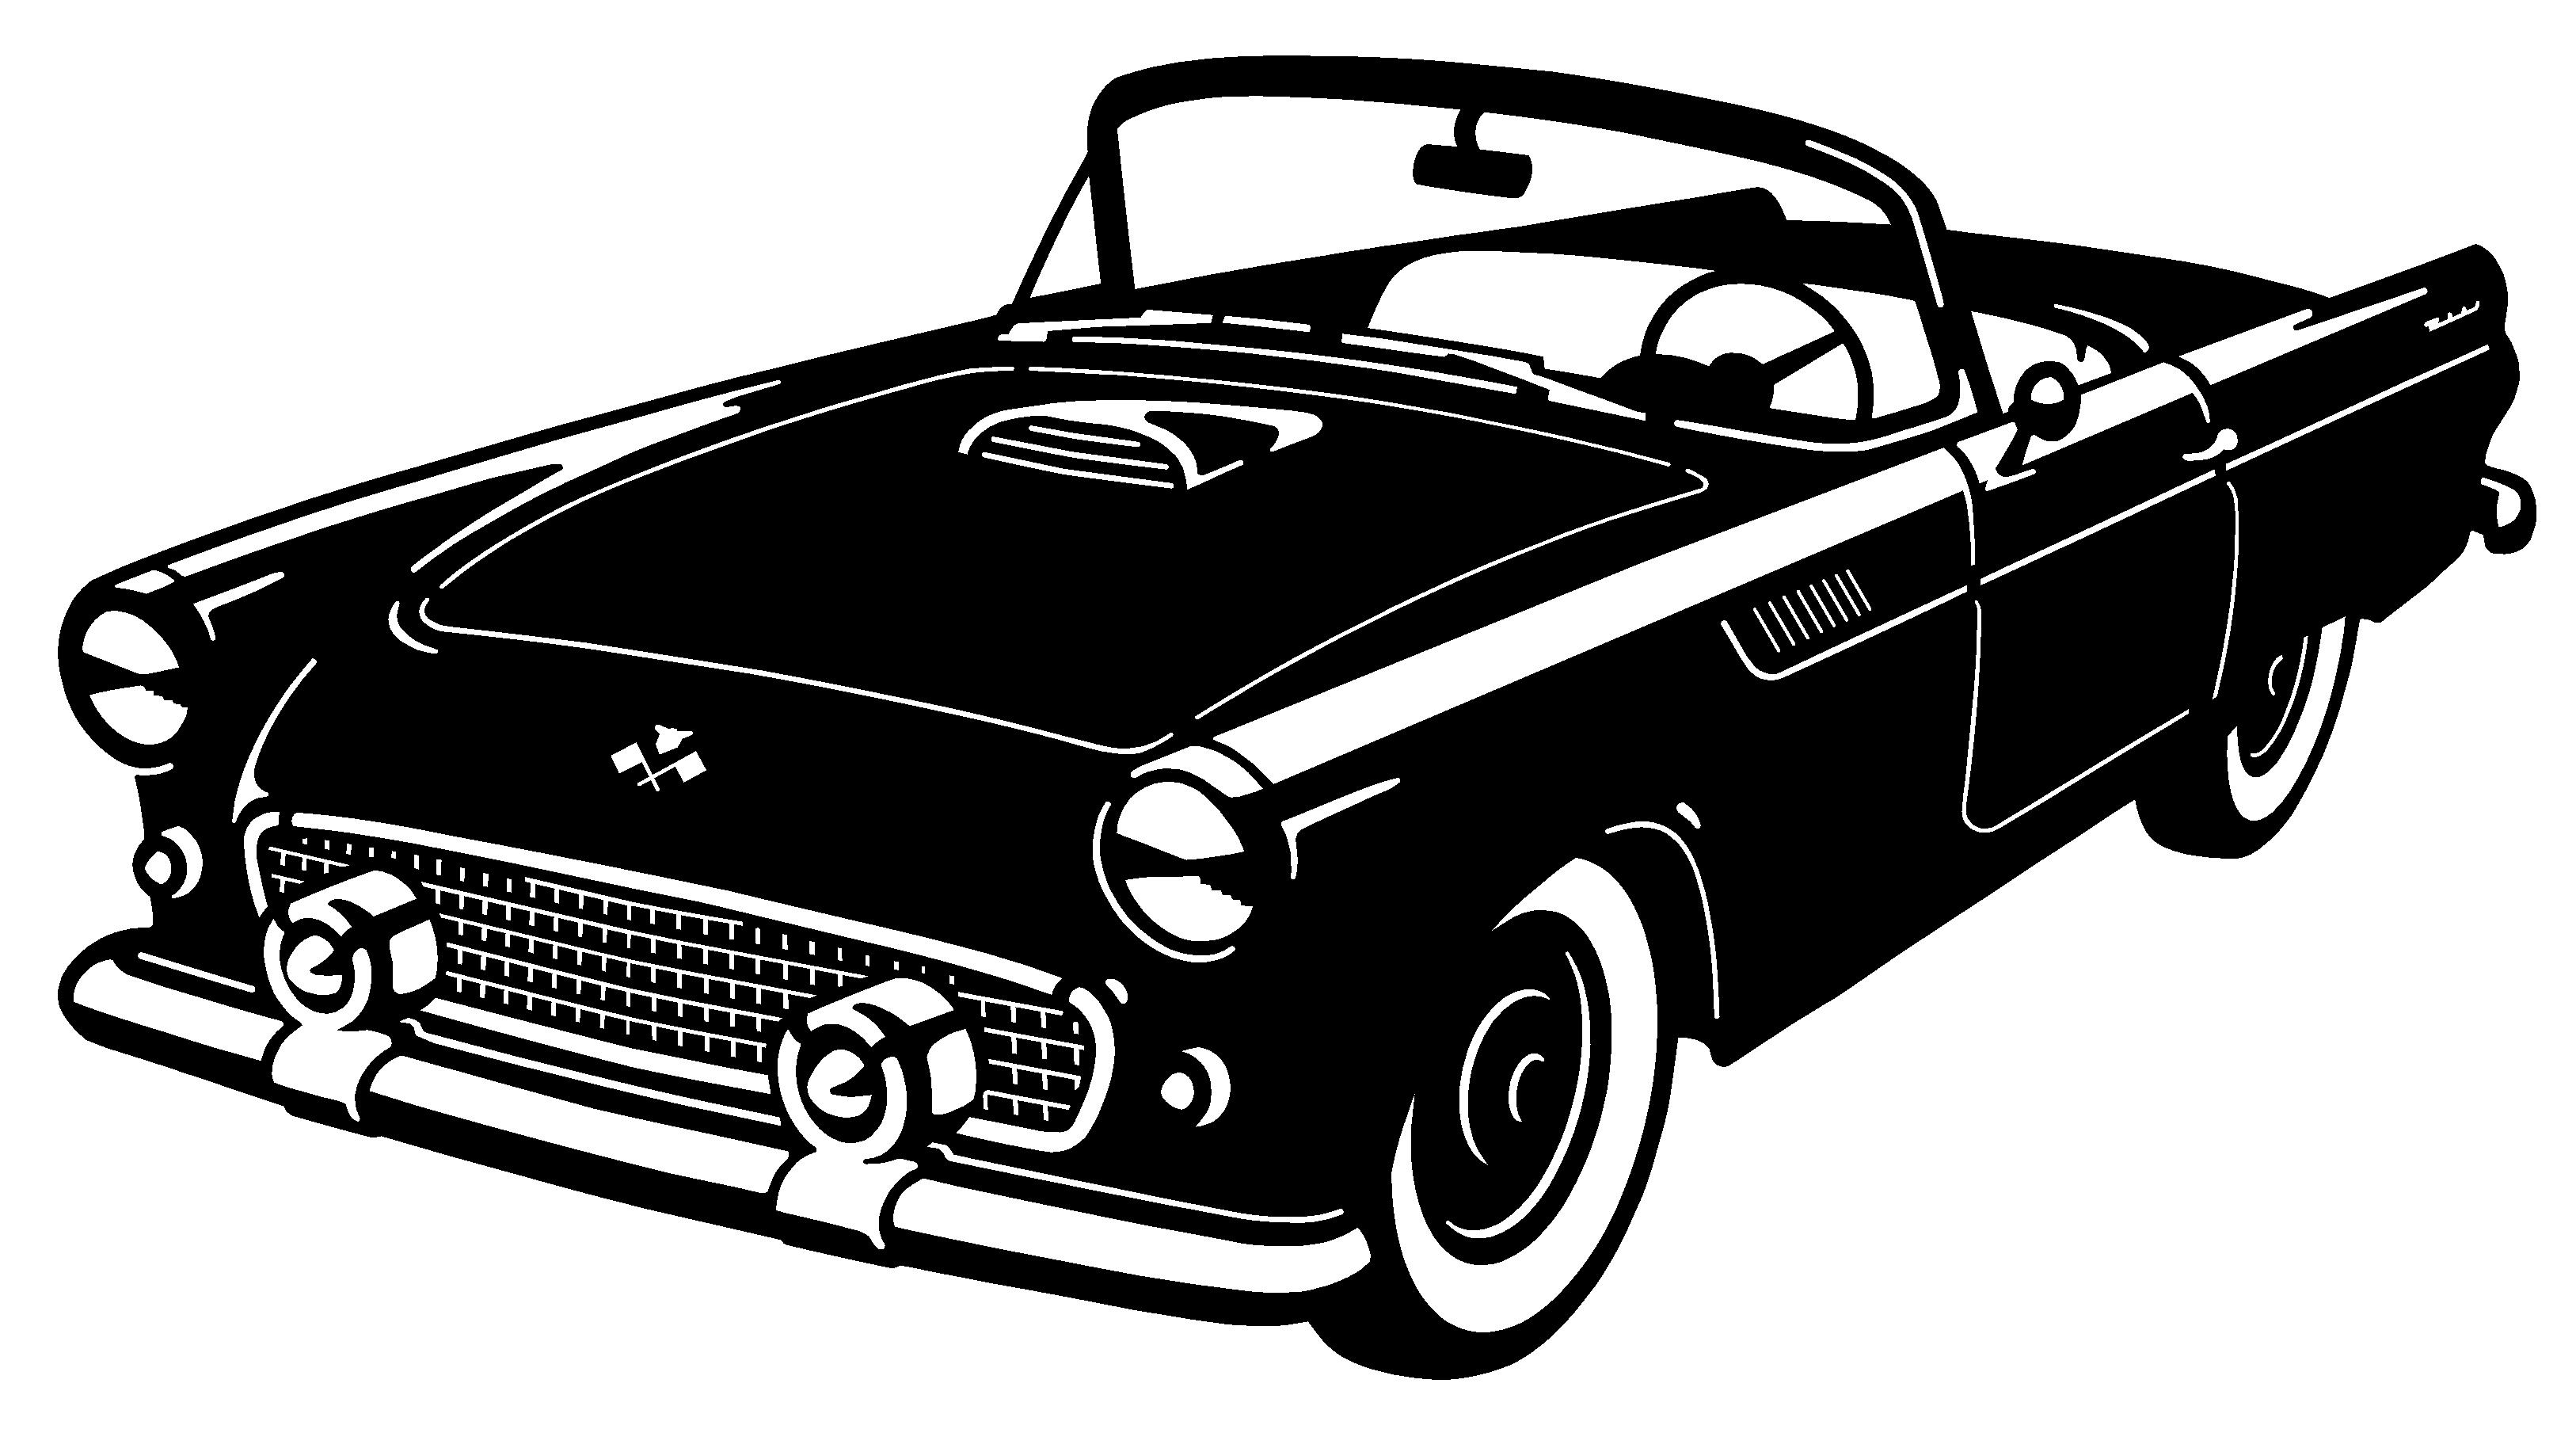 Free Thunderbird Cliparts, Download Free Clip Art, Free Clip.